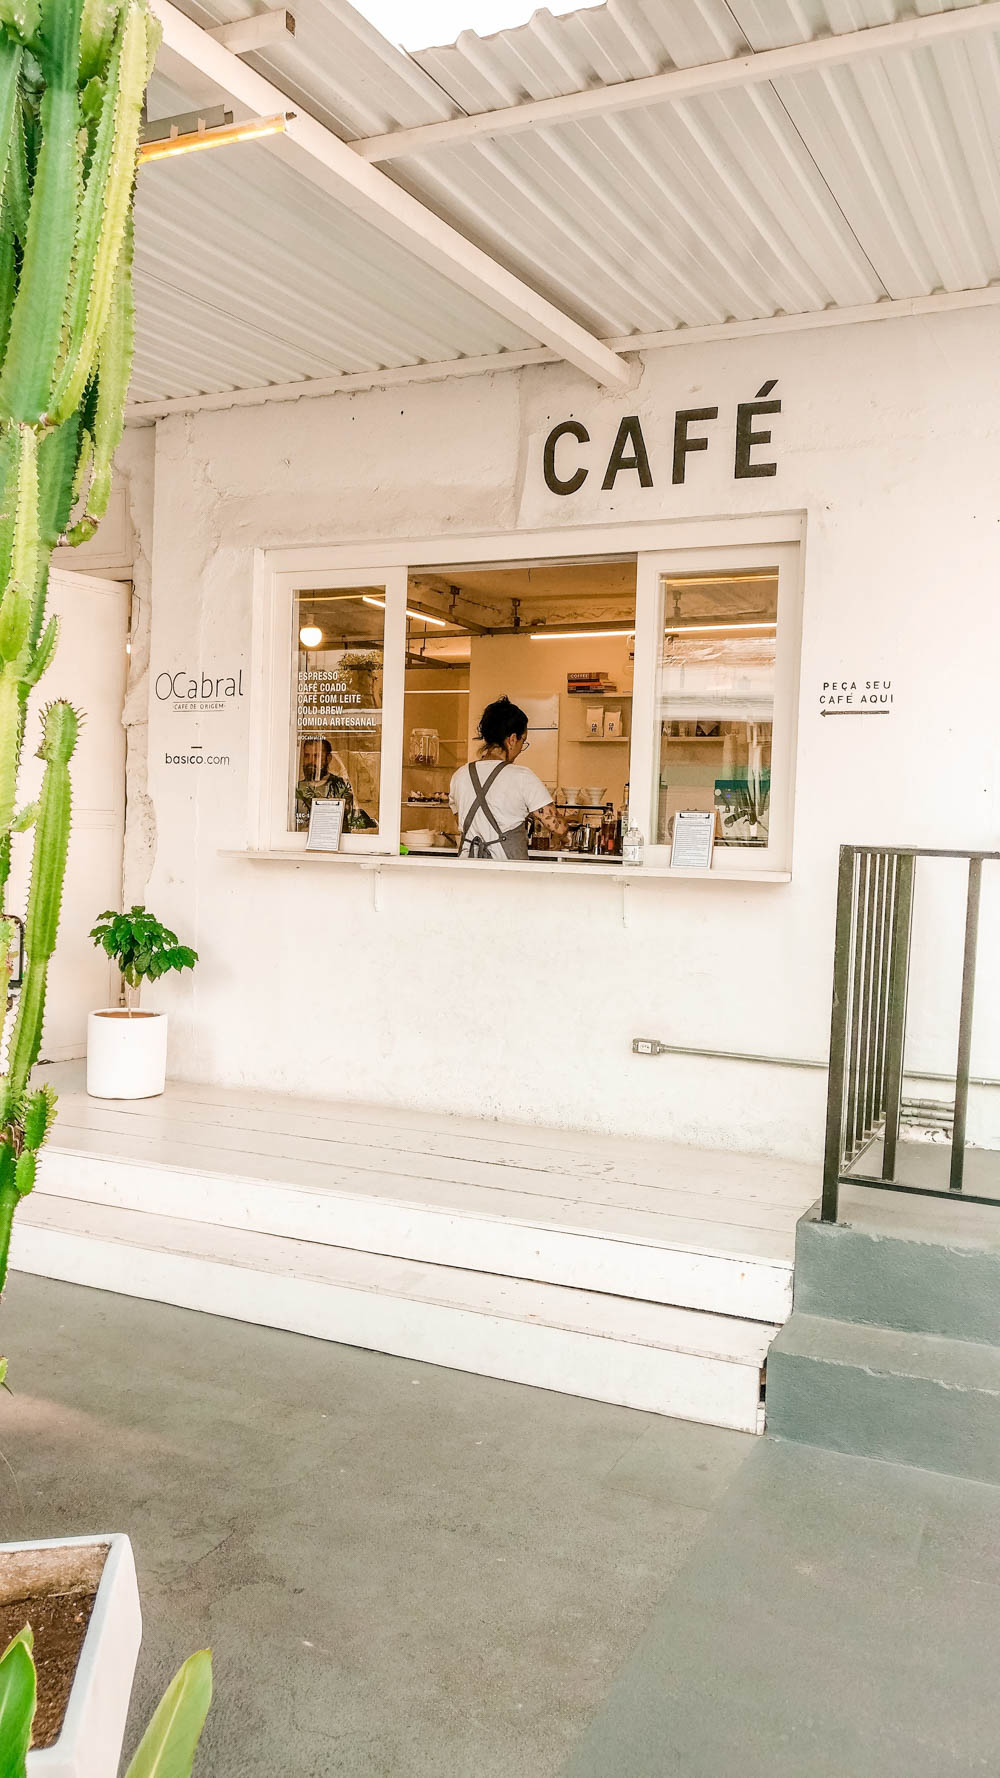 OCabral Café - Specialty coffee shop guide to São Paulo, Brazil | Aliz's Wonderland